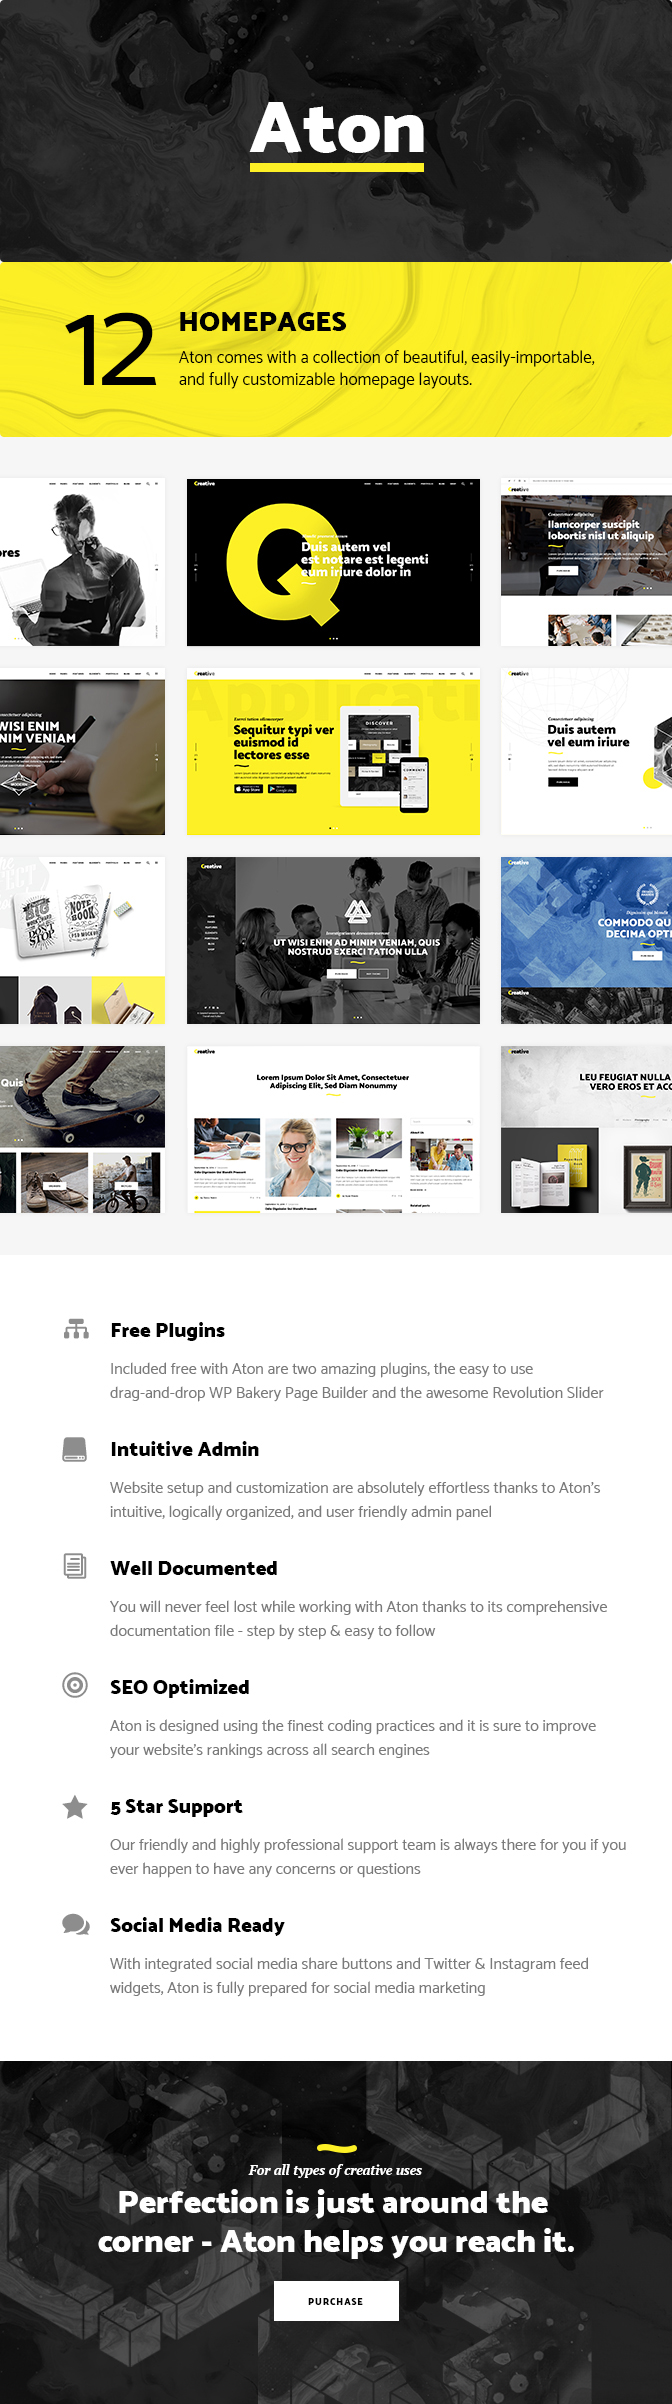 Aton - Modern Creative Design Agency Theme - 1